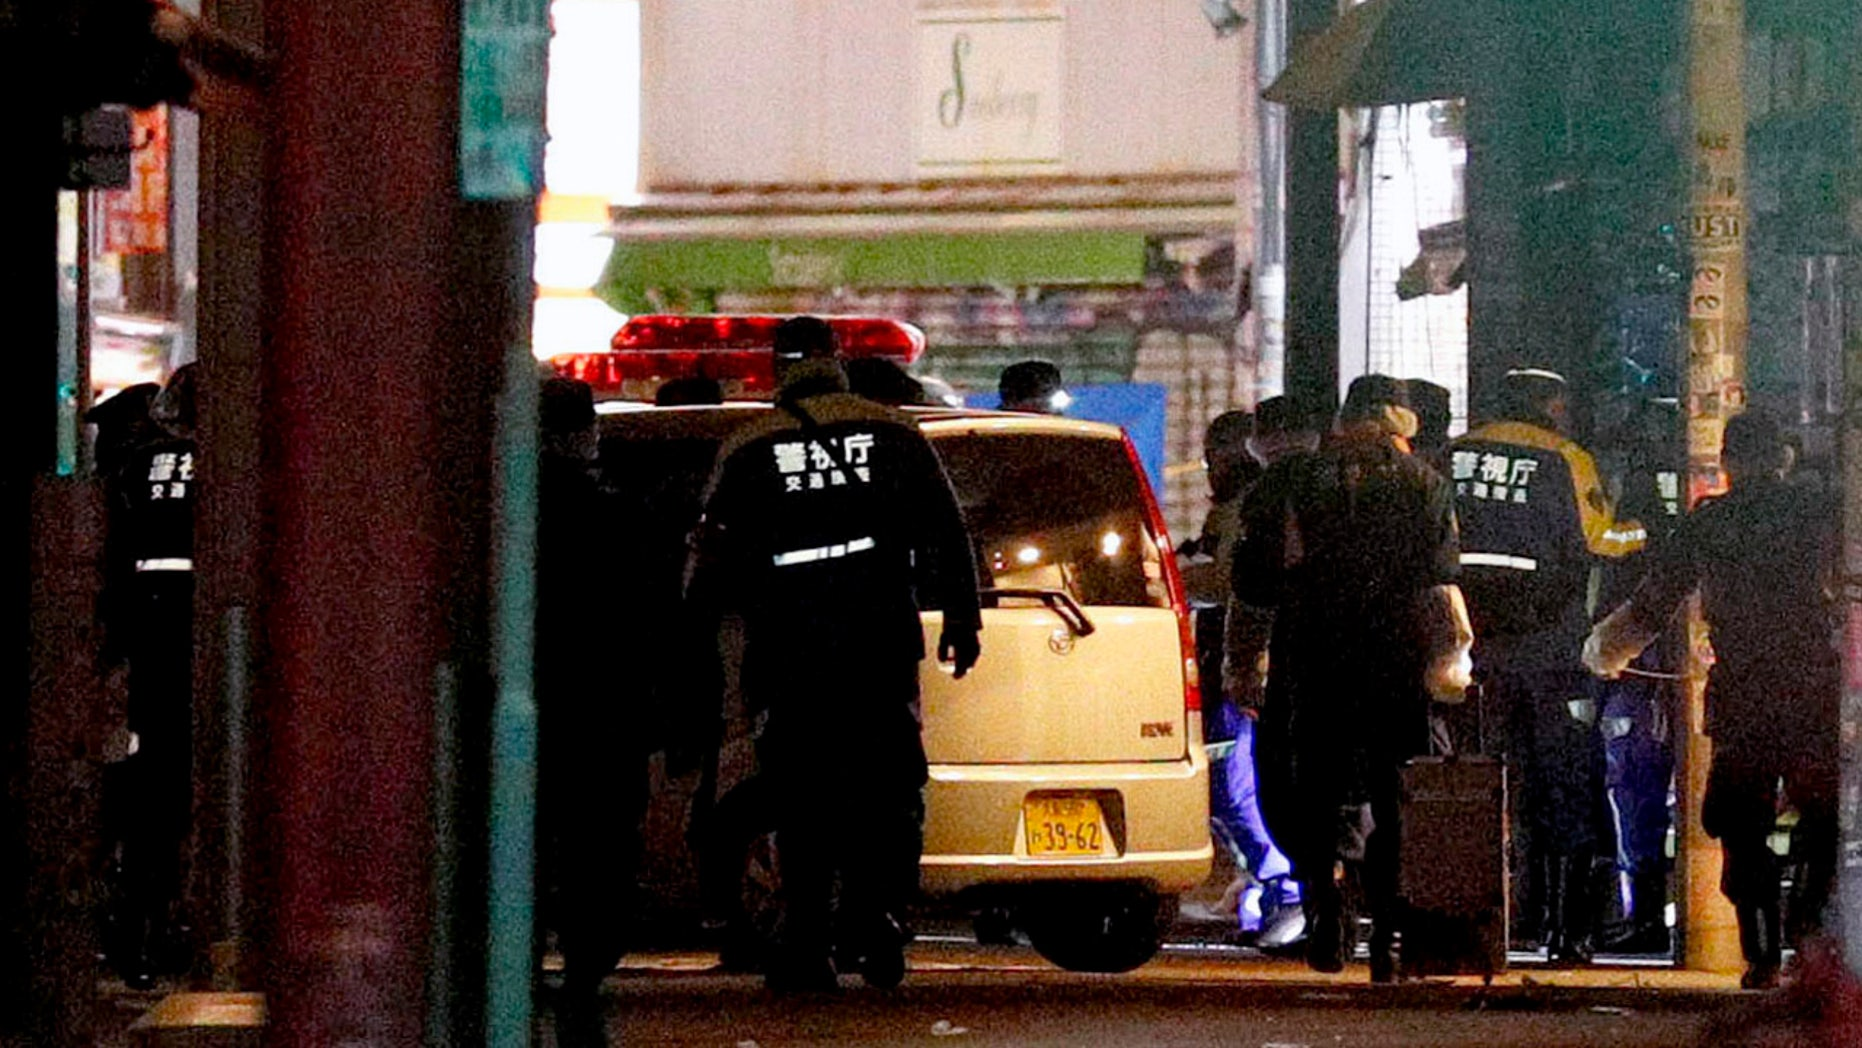 No Pinoy hurt in Tokyo vehicle  attack: DFA